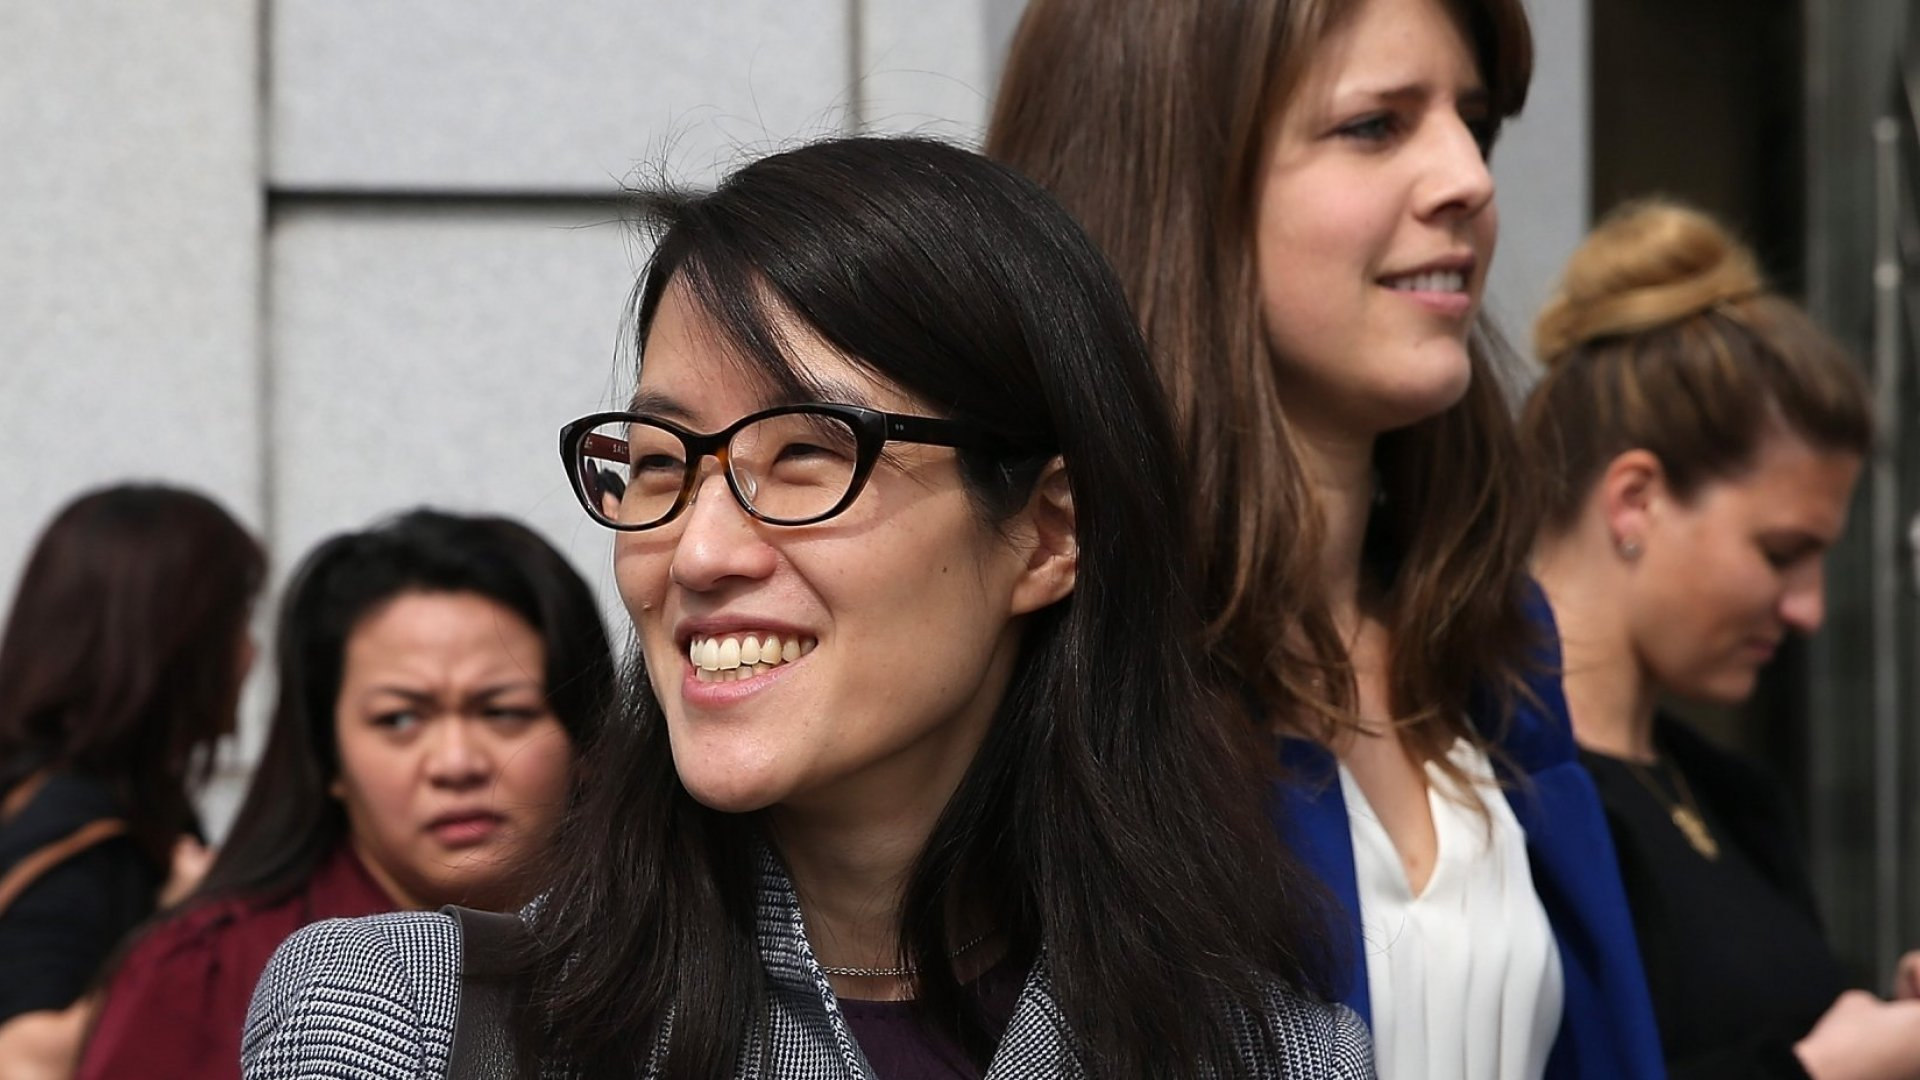 Ellen Pao (C) leaves the California Superior Court Civic Center Courthouse during a lunch break from her trial on March 10 in San Francisco. Pao, interim CEO of Reddit, is suing her former employer, Silicon Valley venture capital firm Kleiner Perkins Caulfield and Byers, for $16 million. (Photo by Justin Sullivan/Getty Images)